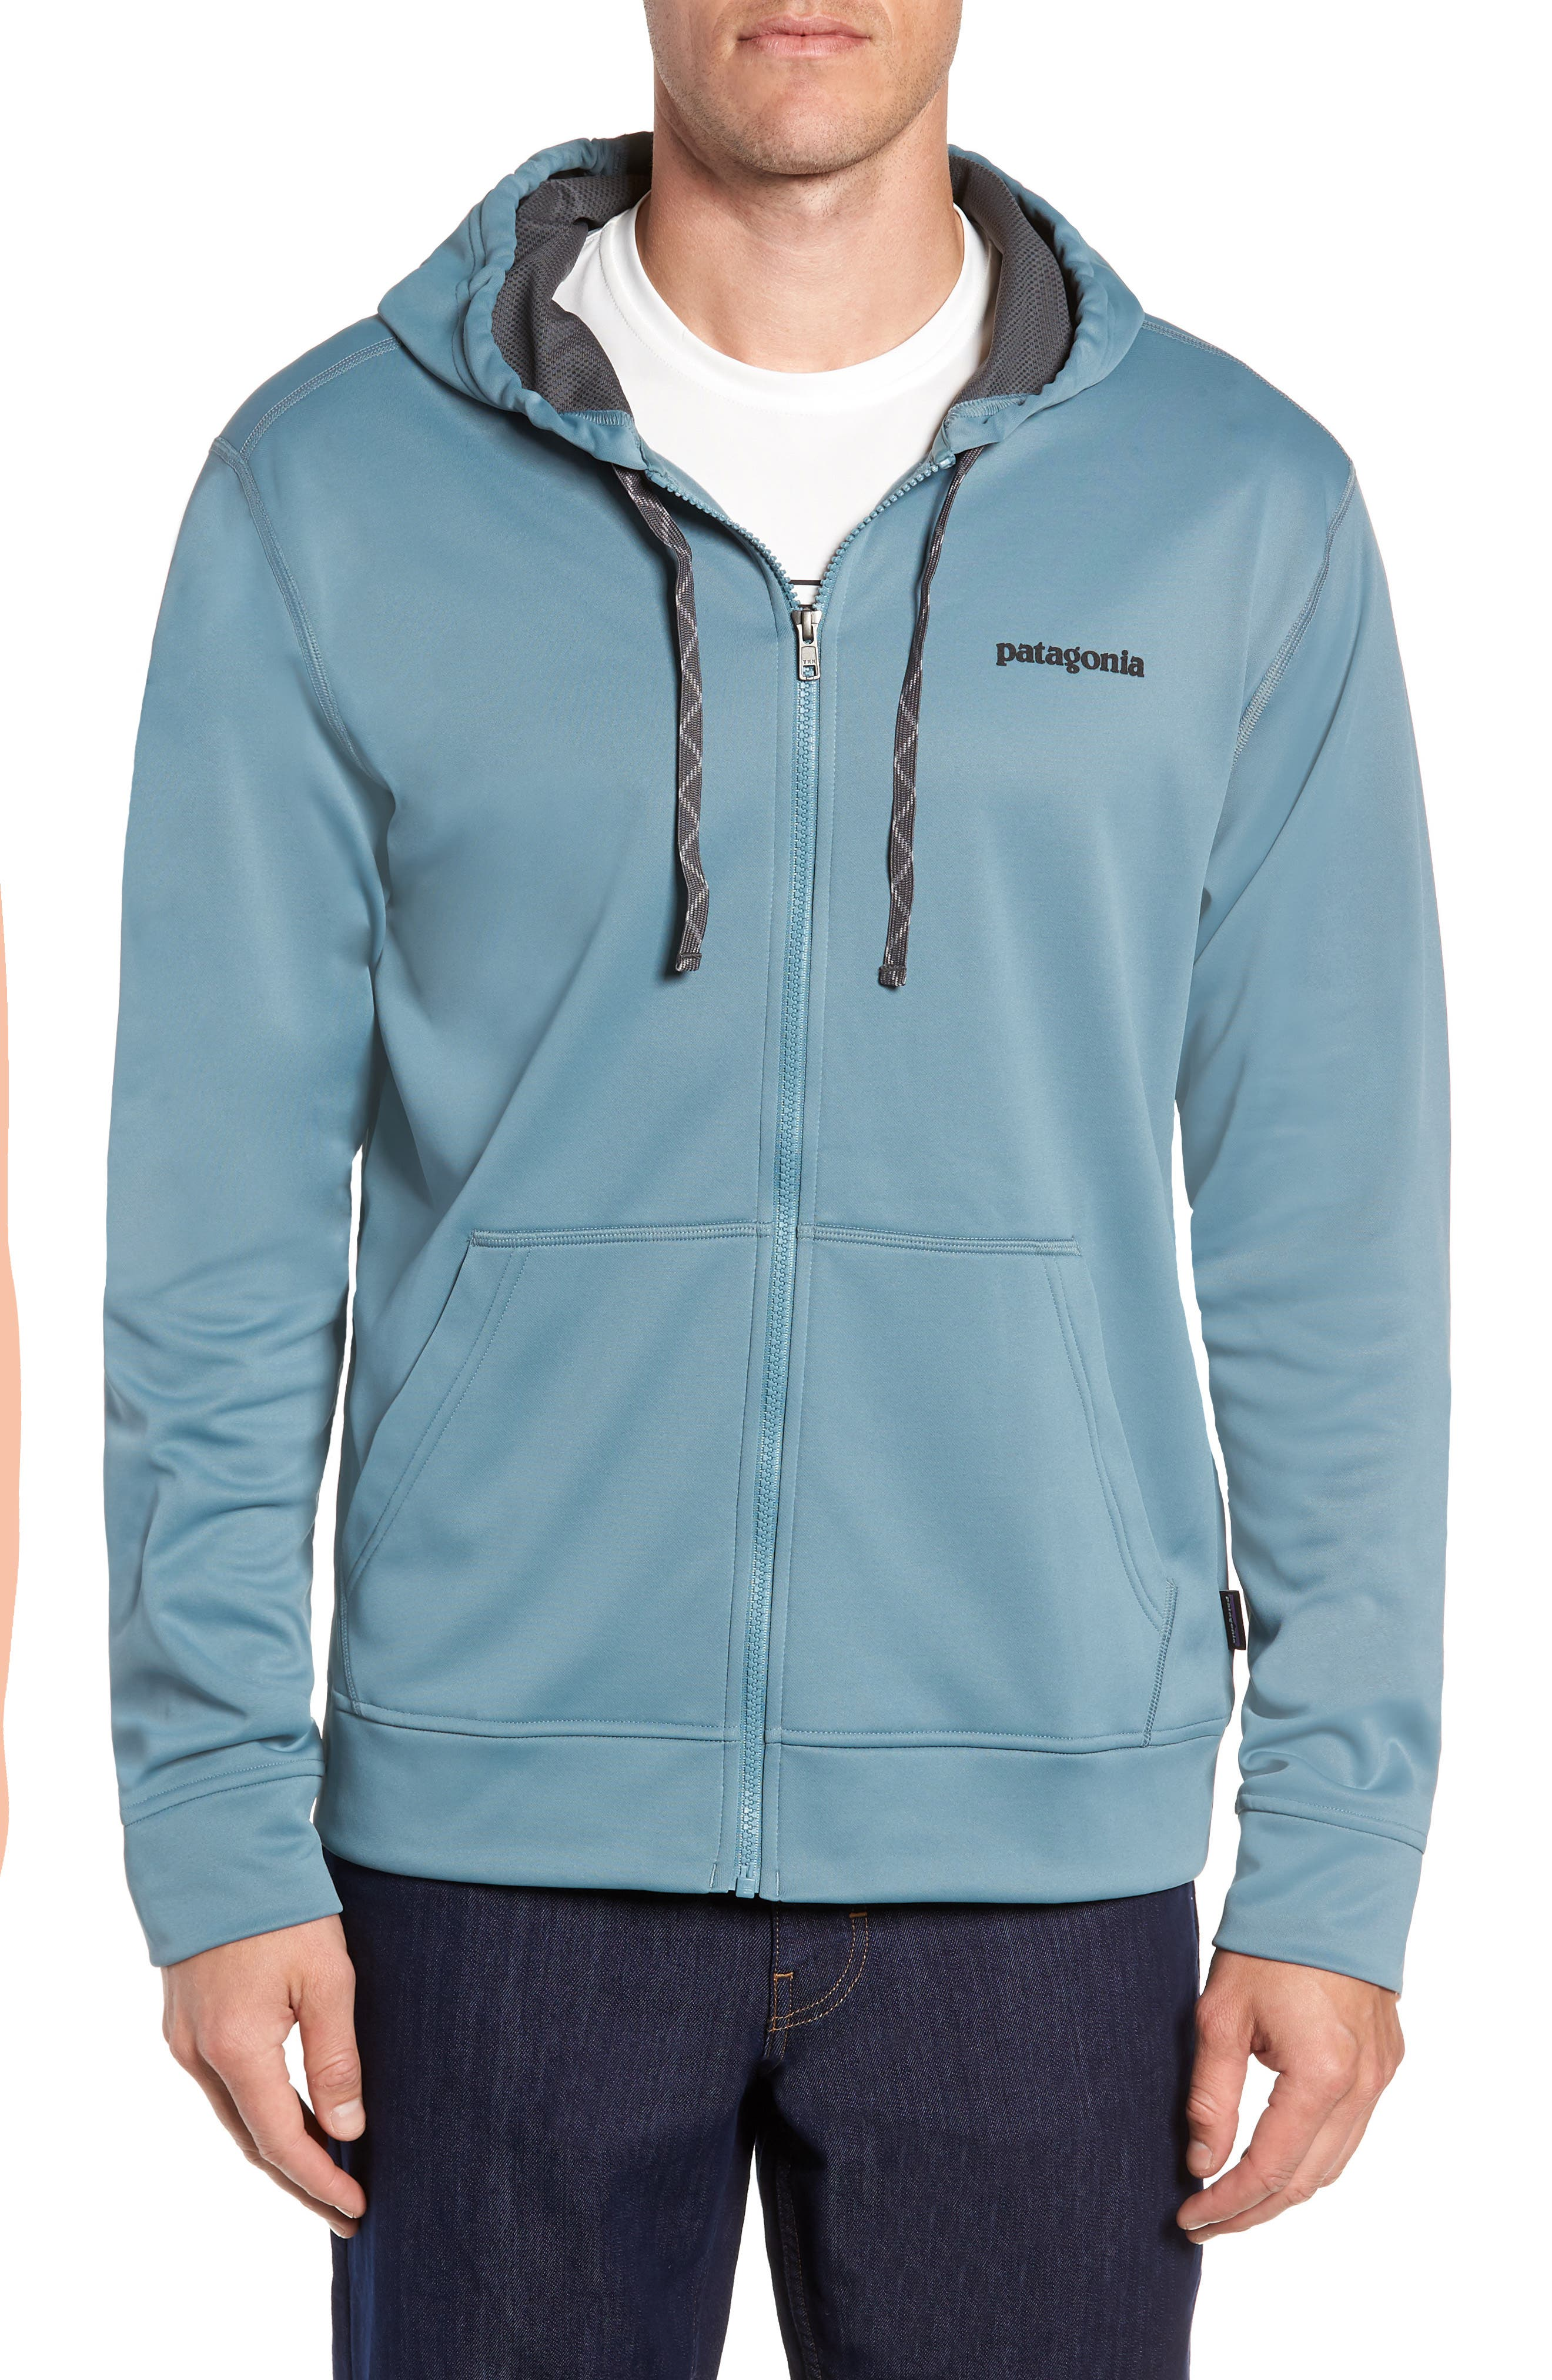 Fitz Roy Trout PolyCycle<sup>®</sup> Full-Zip Hoodie,                             Alternate thumbnail 4, color,                             SHADOW BLUE